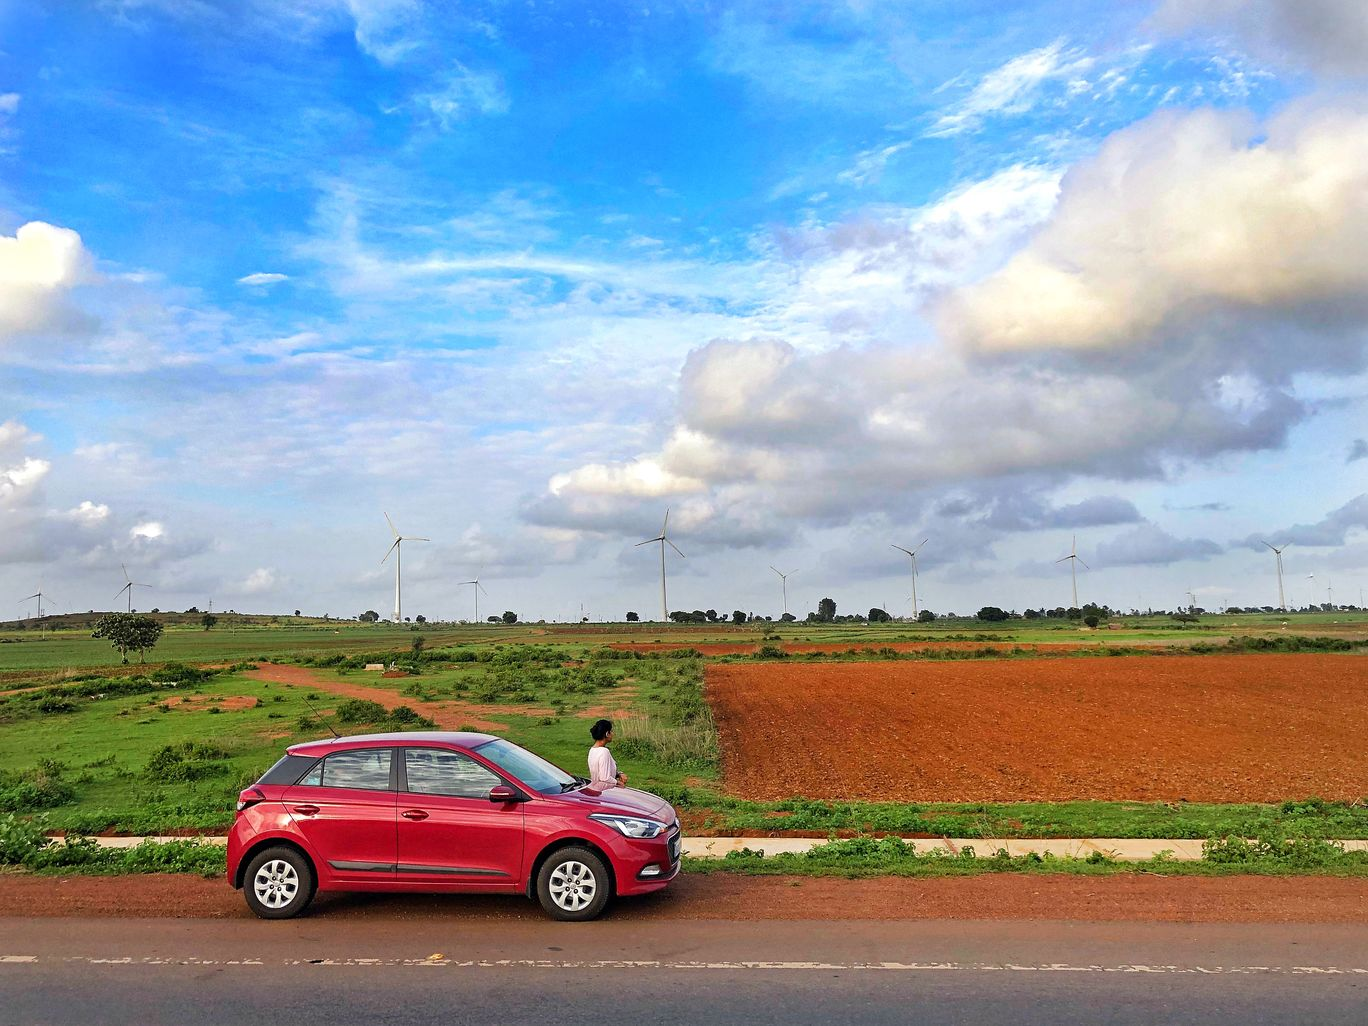 Photo of Kumta - Hubli Road By Varun